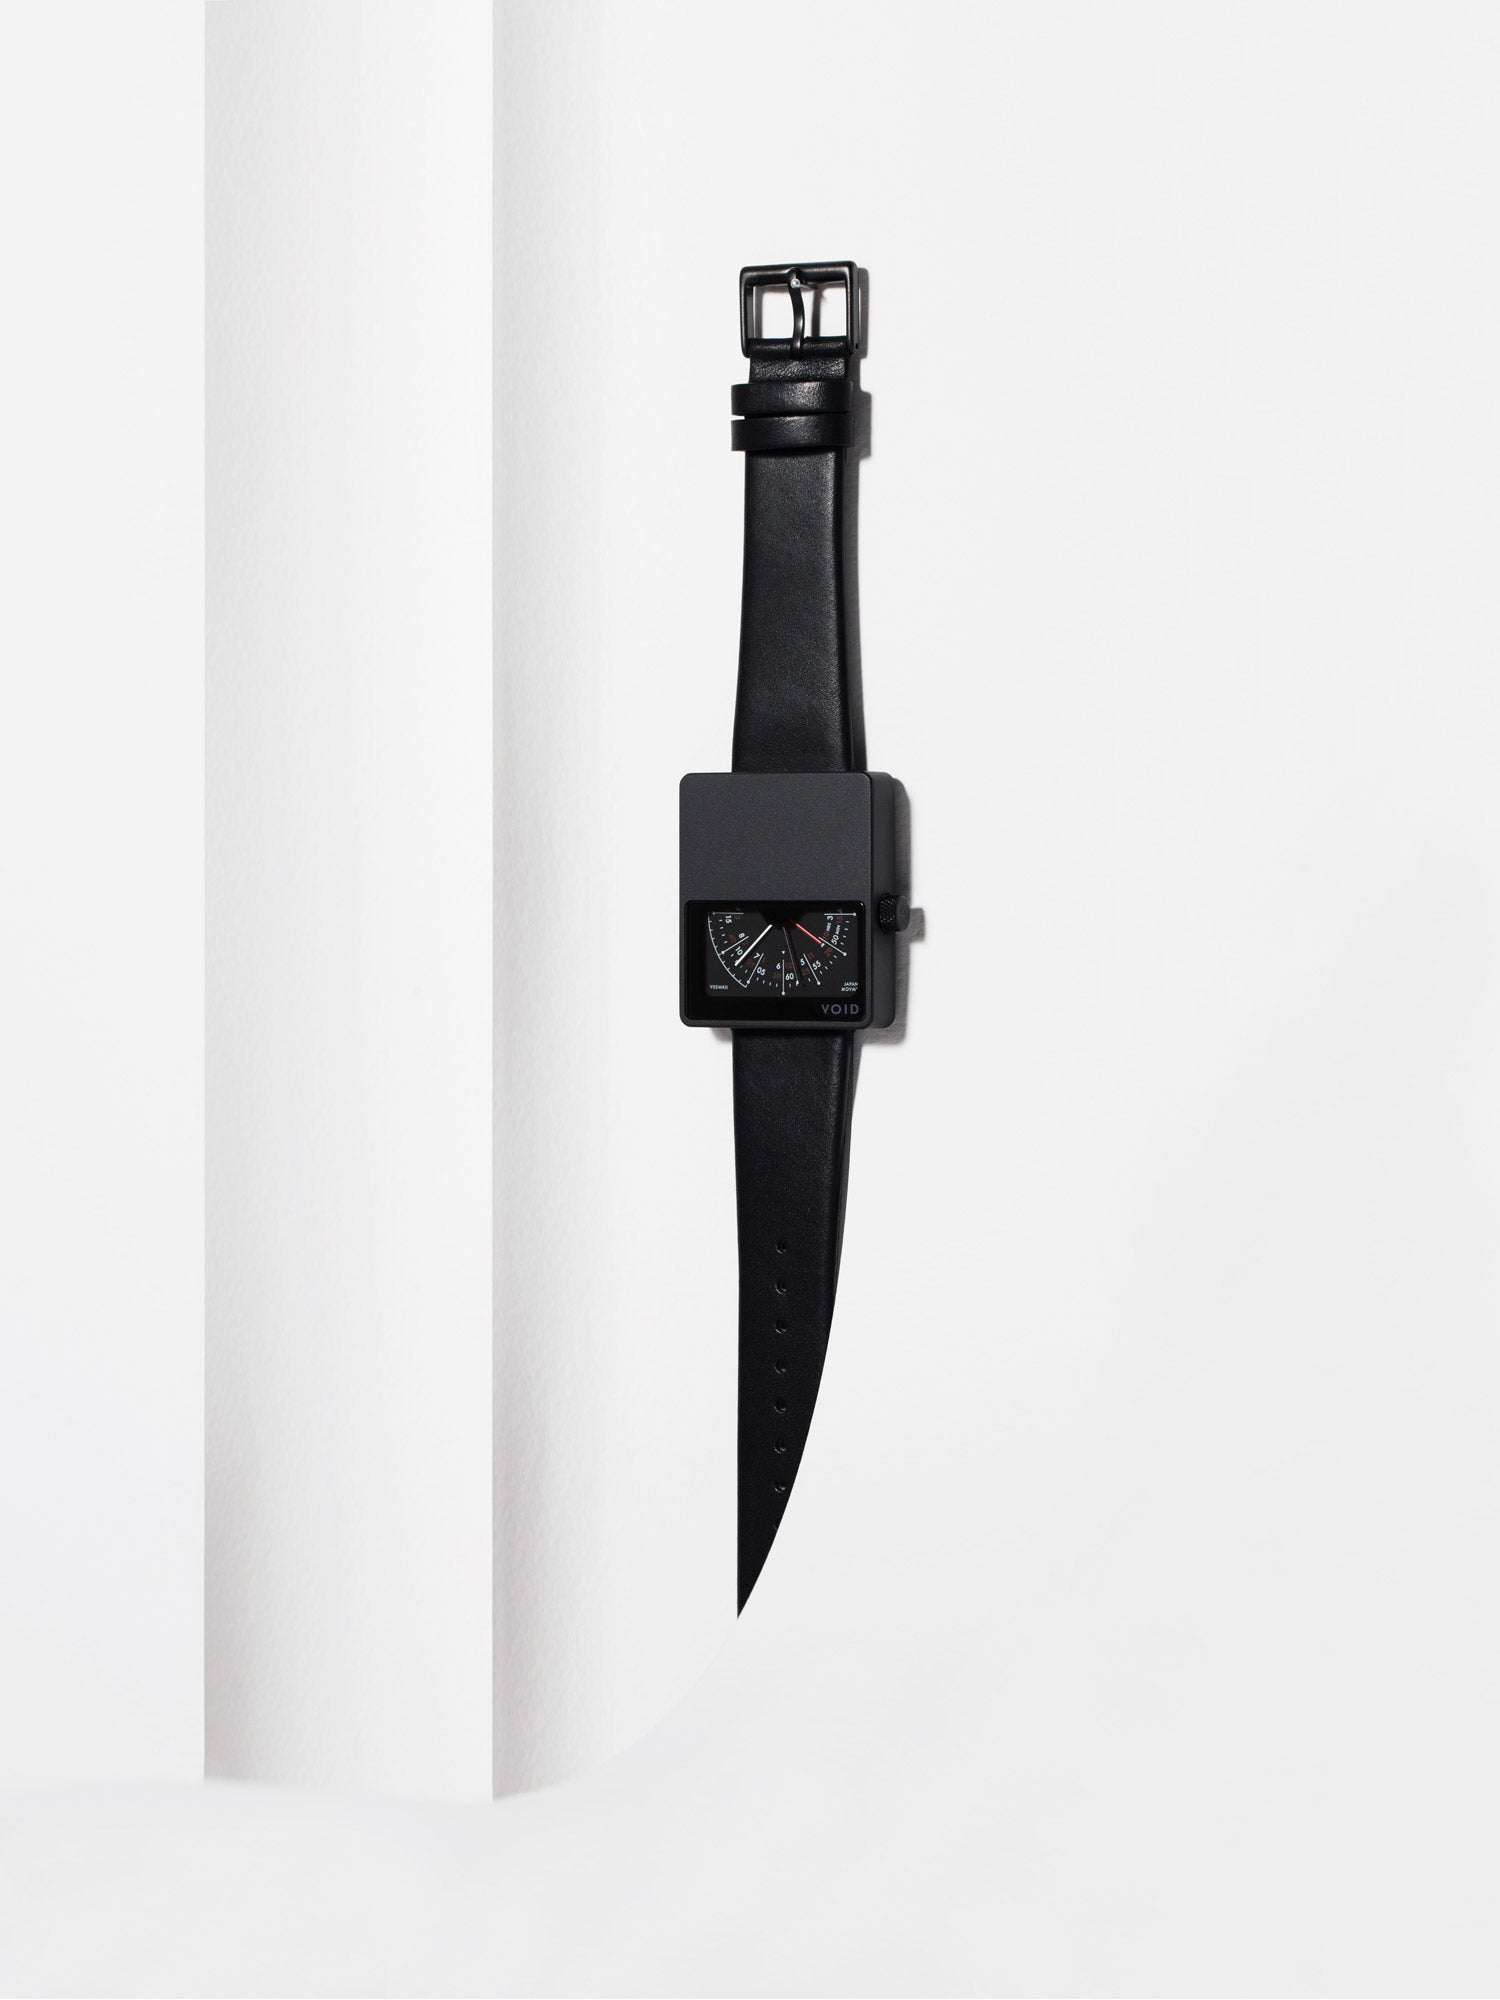 The iconic square horizon V02MKII watch by swedish designer David Ericsson. V02MKII-BL/BL